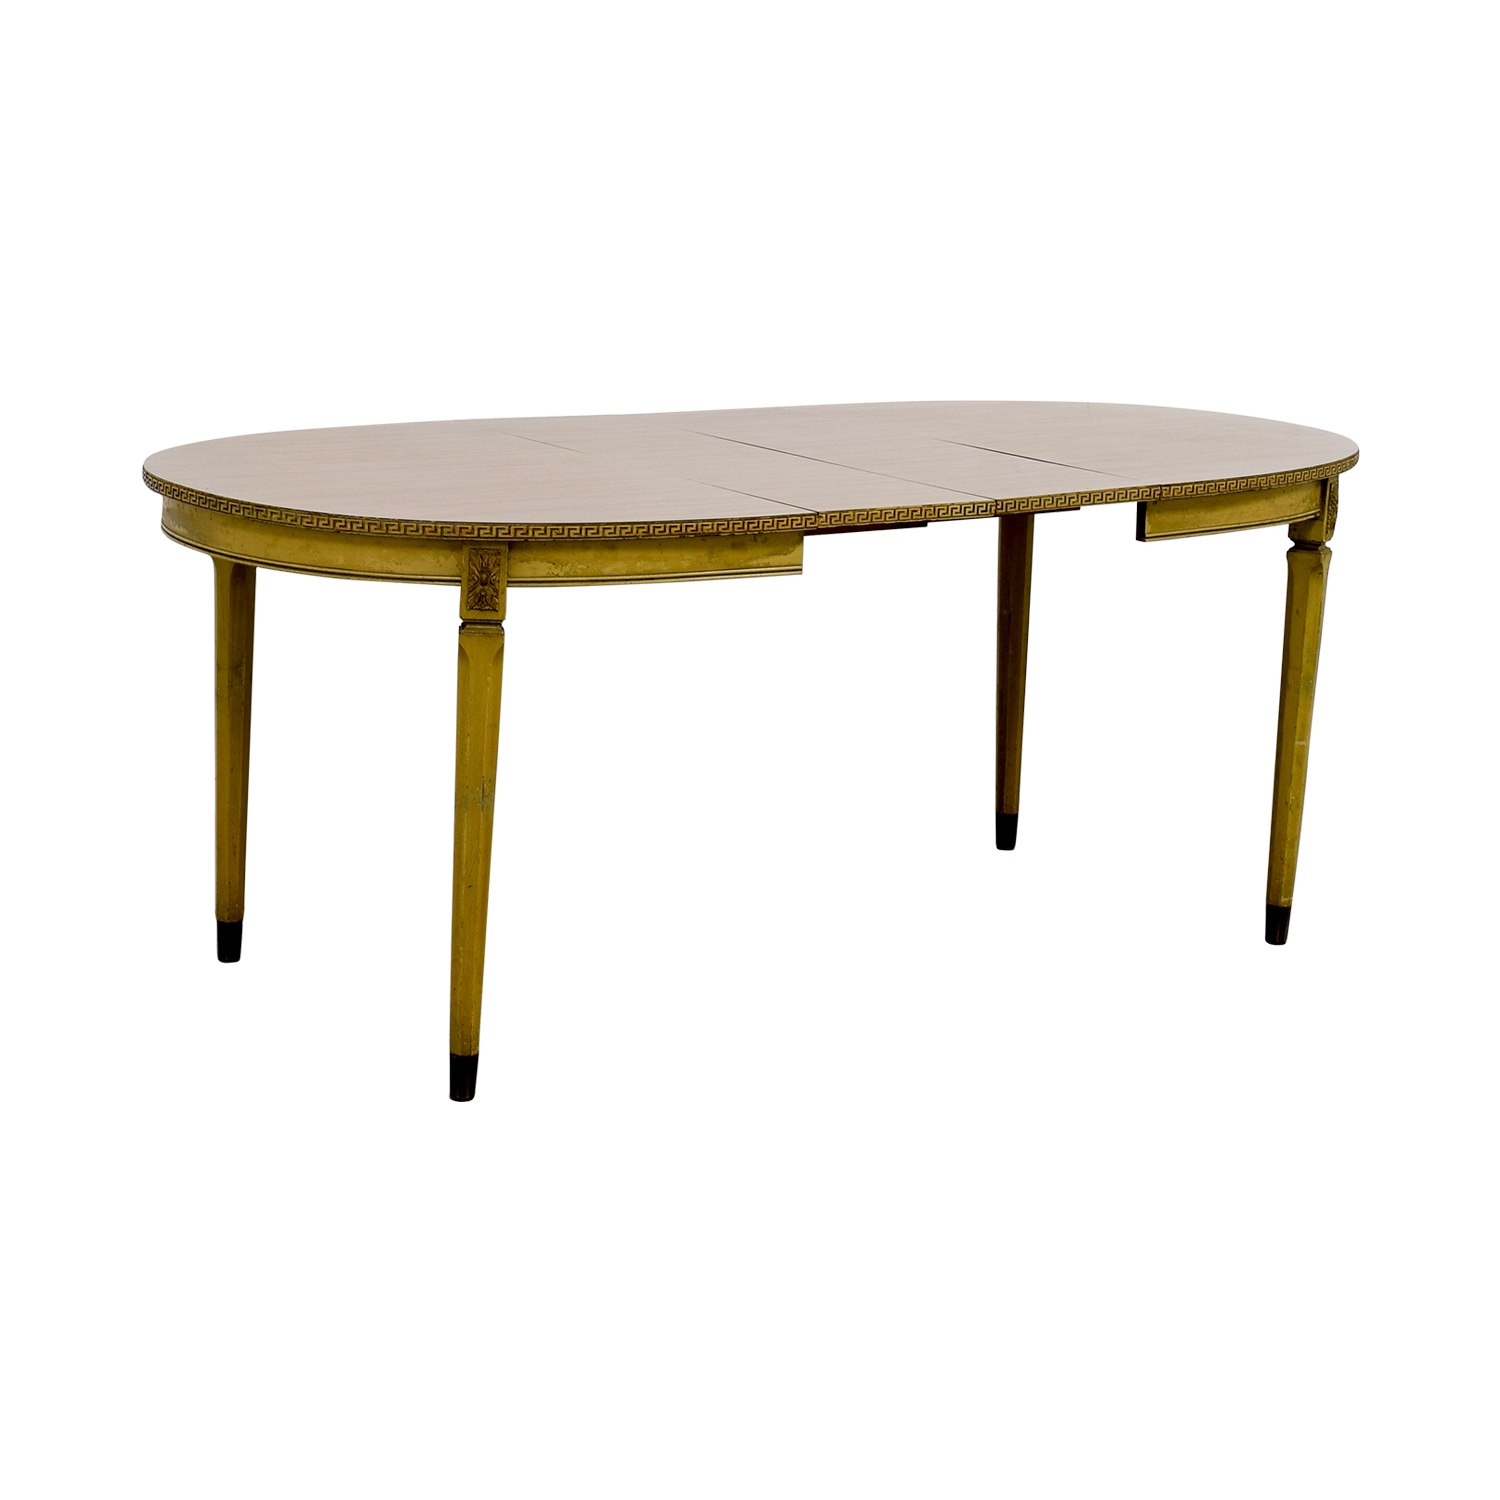 Vintage Greek Key Dining Table with Two Leaves / Dinner Tables